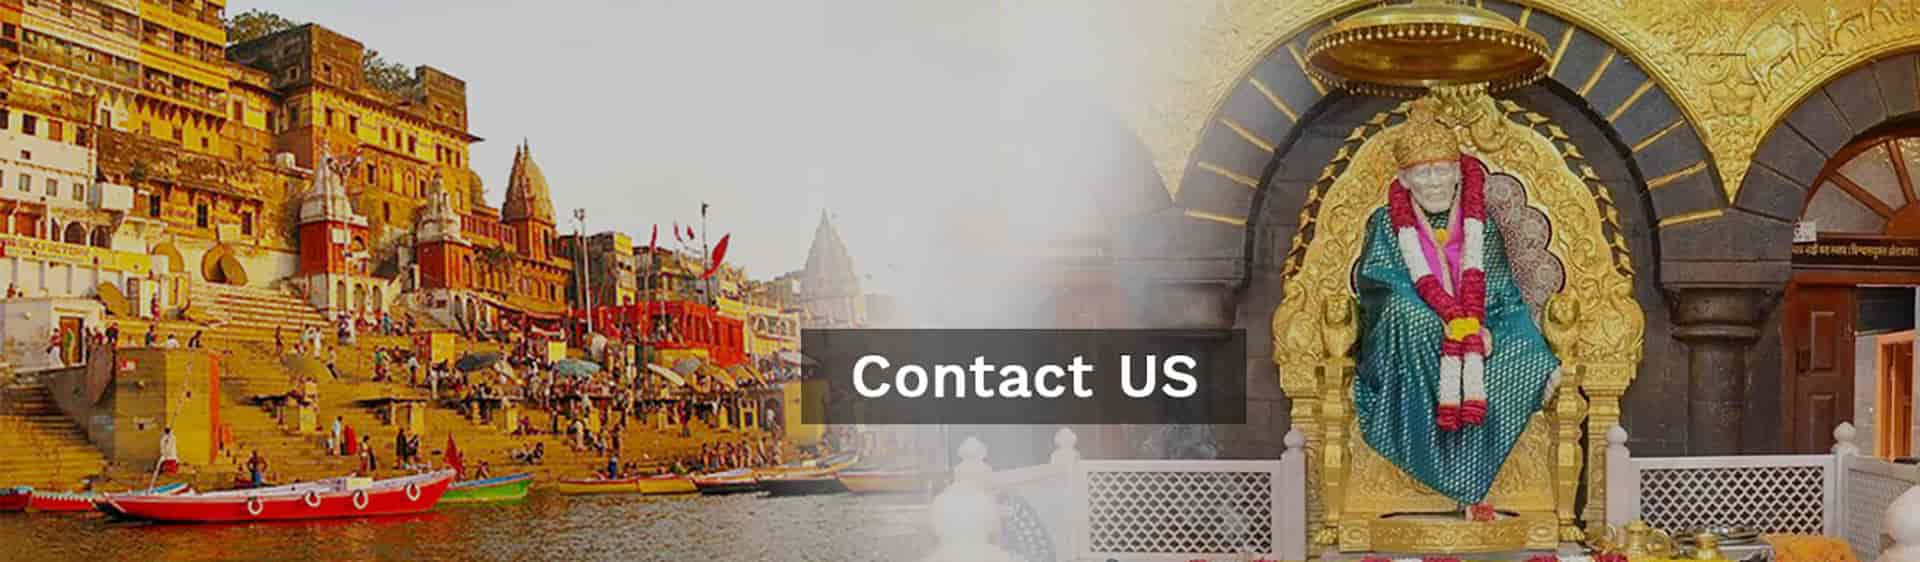 shirdi tour package from coimbatore, shirdi Ajanta ellora package from bangalore, shirdi pandharipur package from Chennai